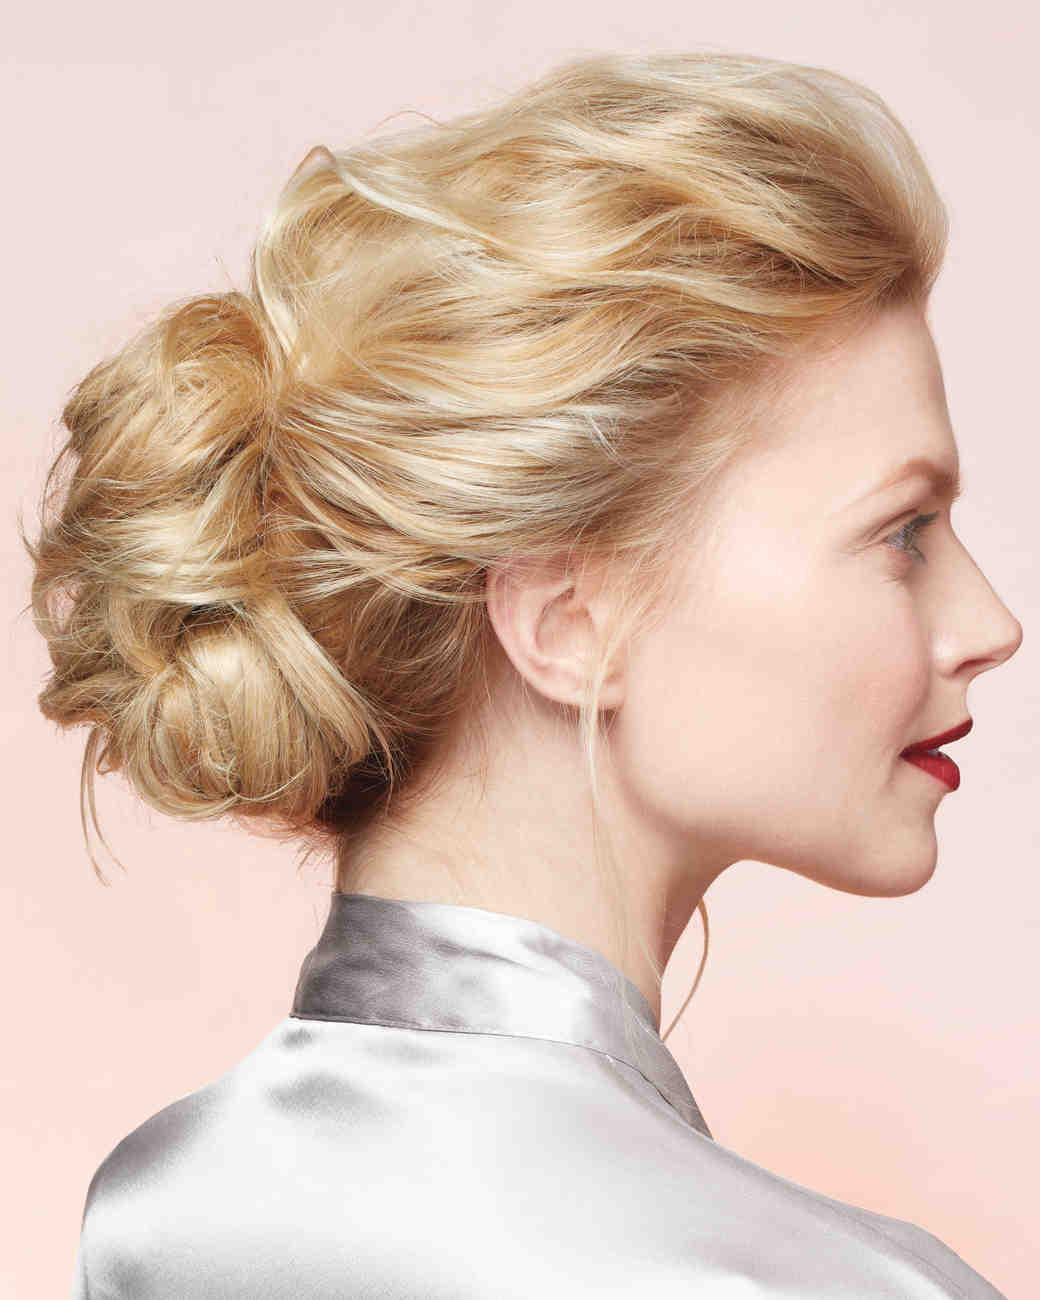 Best ideas about Updo Hairstyle . Save or Pin DIY Wedding Hairstyles Now.